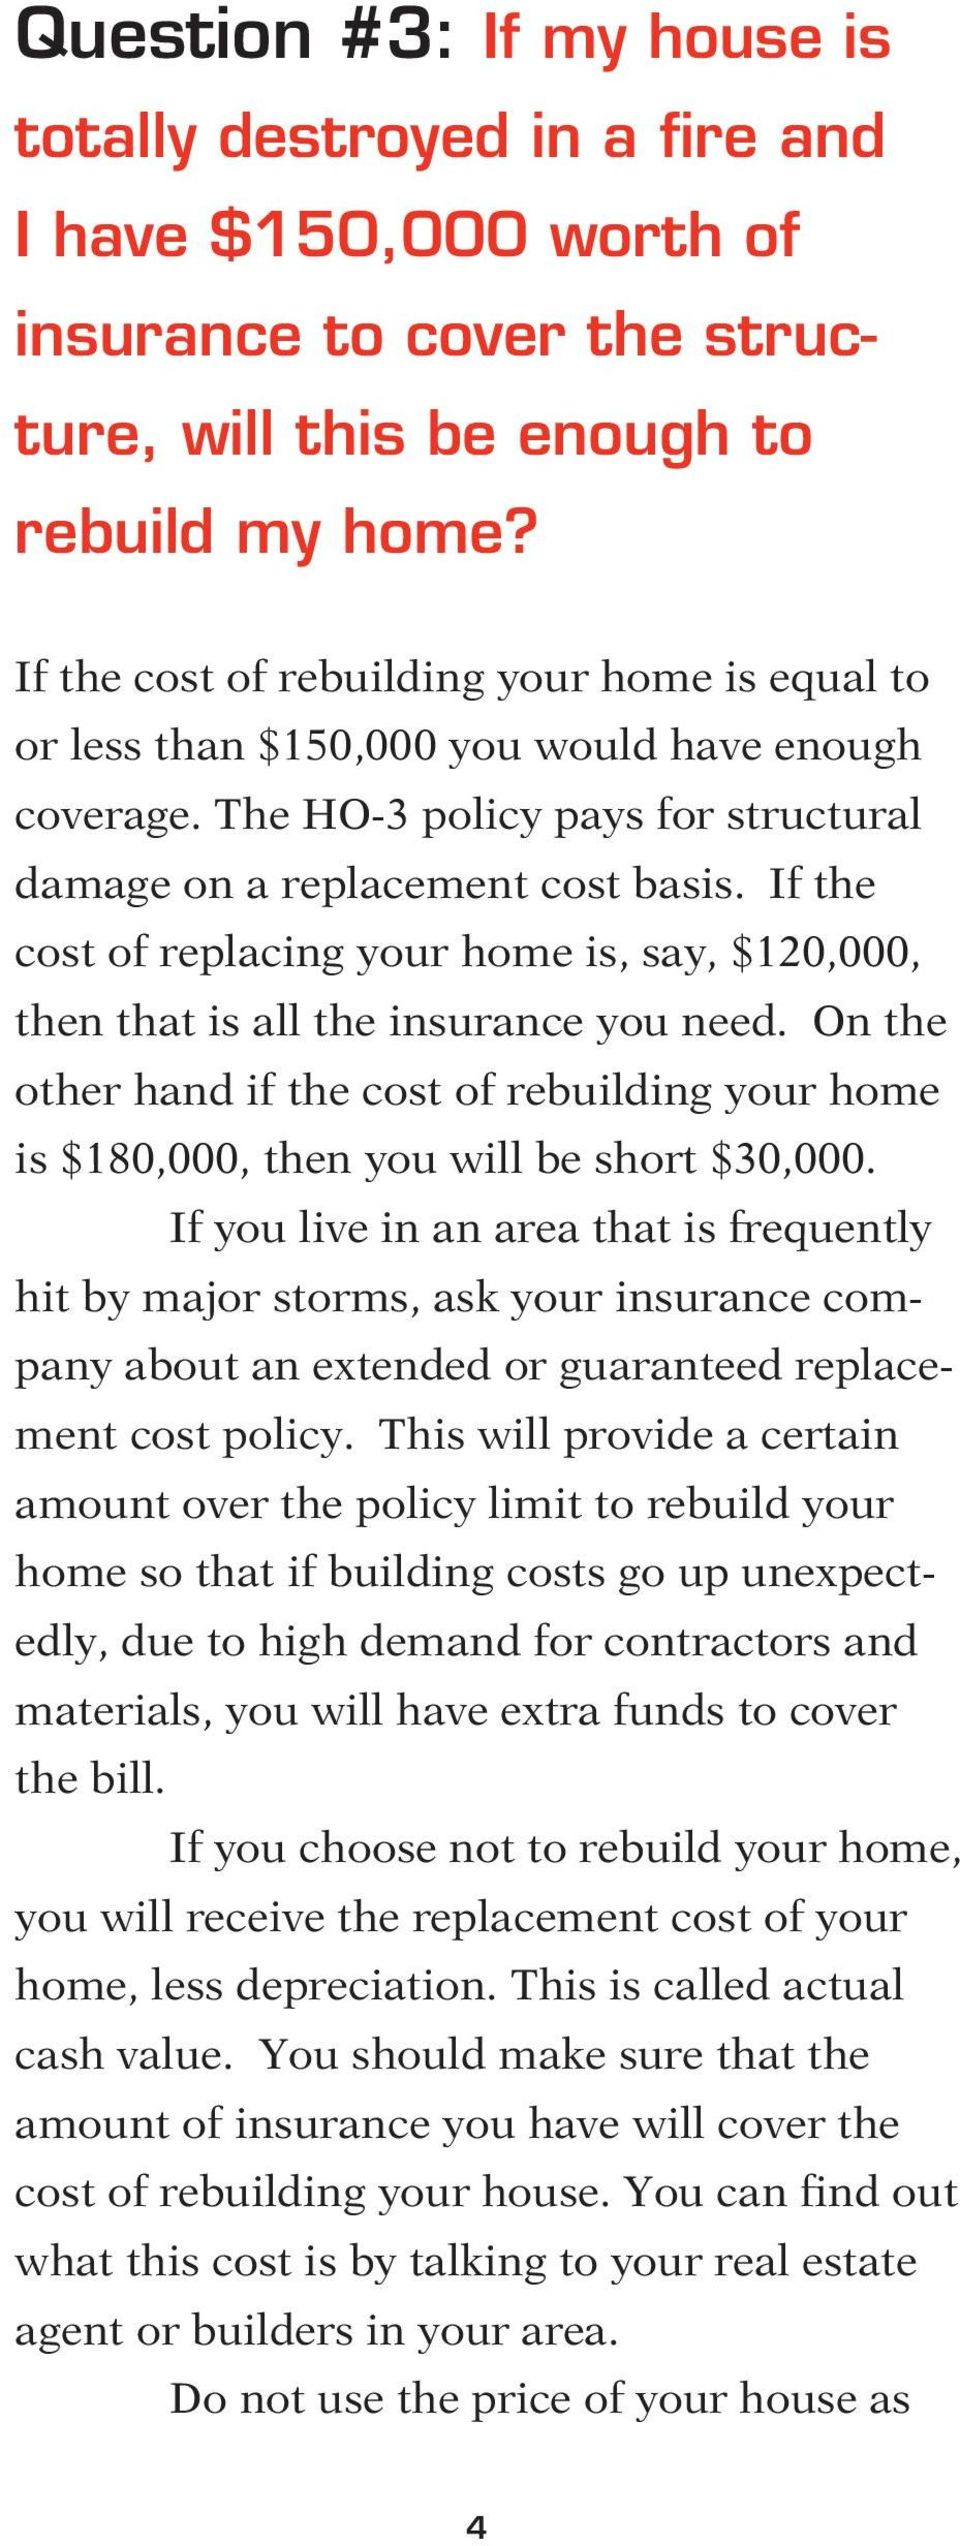 If the cost of replacing your home is, say, $120,000, then that is all the insurance you need. On the other hand if the cost of rebuilding your home is $180,000, then you will be short $30,000.